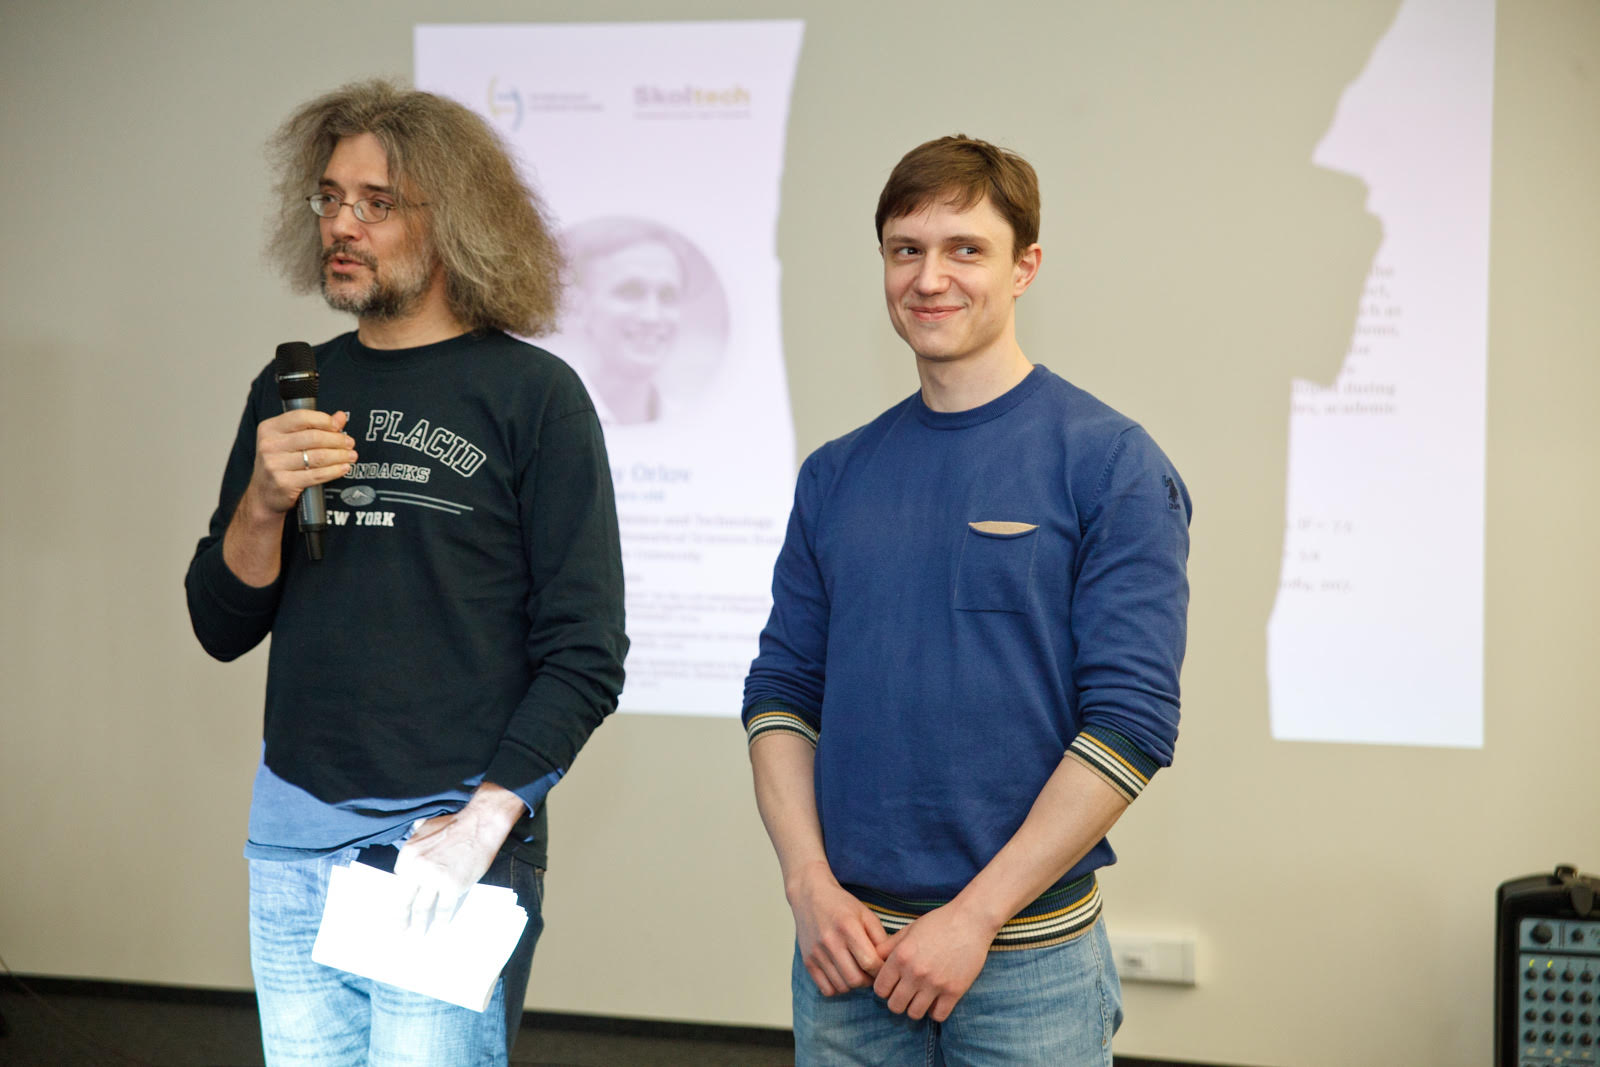 Professor Konstantin Severinov, Director of the Center for Data-Intensive Biomedicine and Biotechnology, (left) and Dmitry Svetlichnyy pictured during the 2017 Systems Biology fellowship award ceremony.